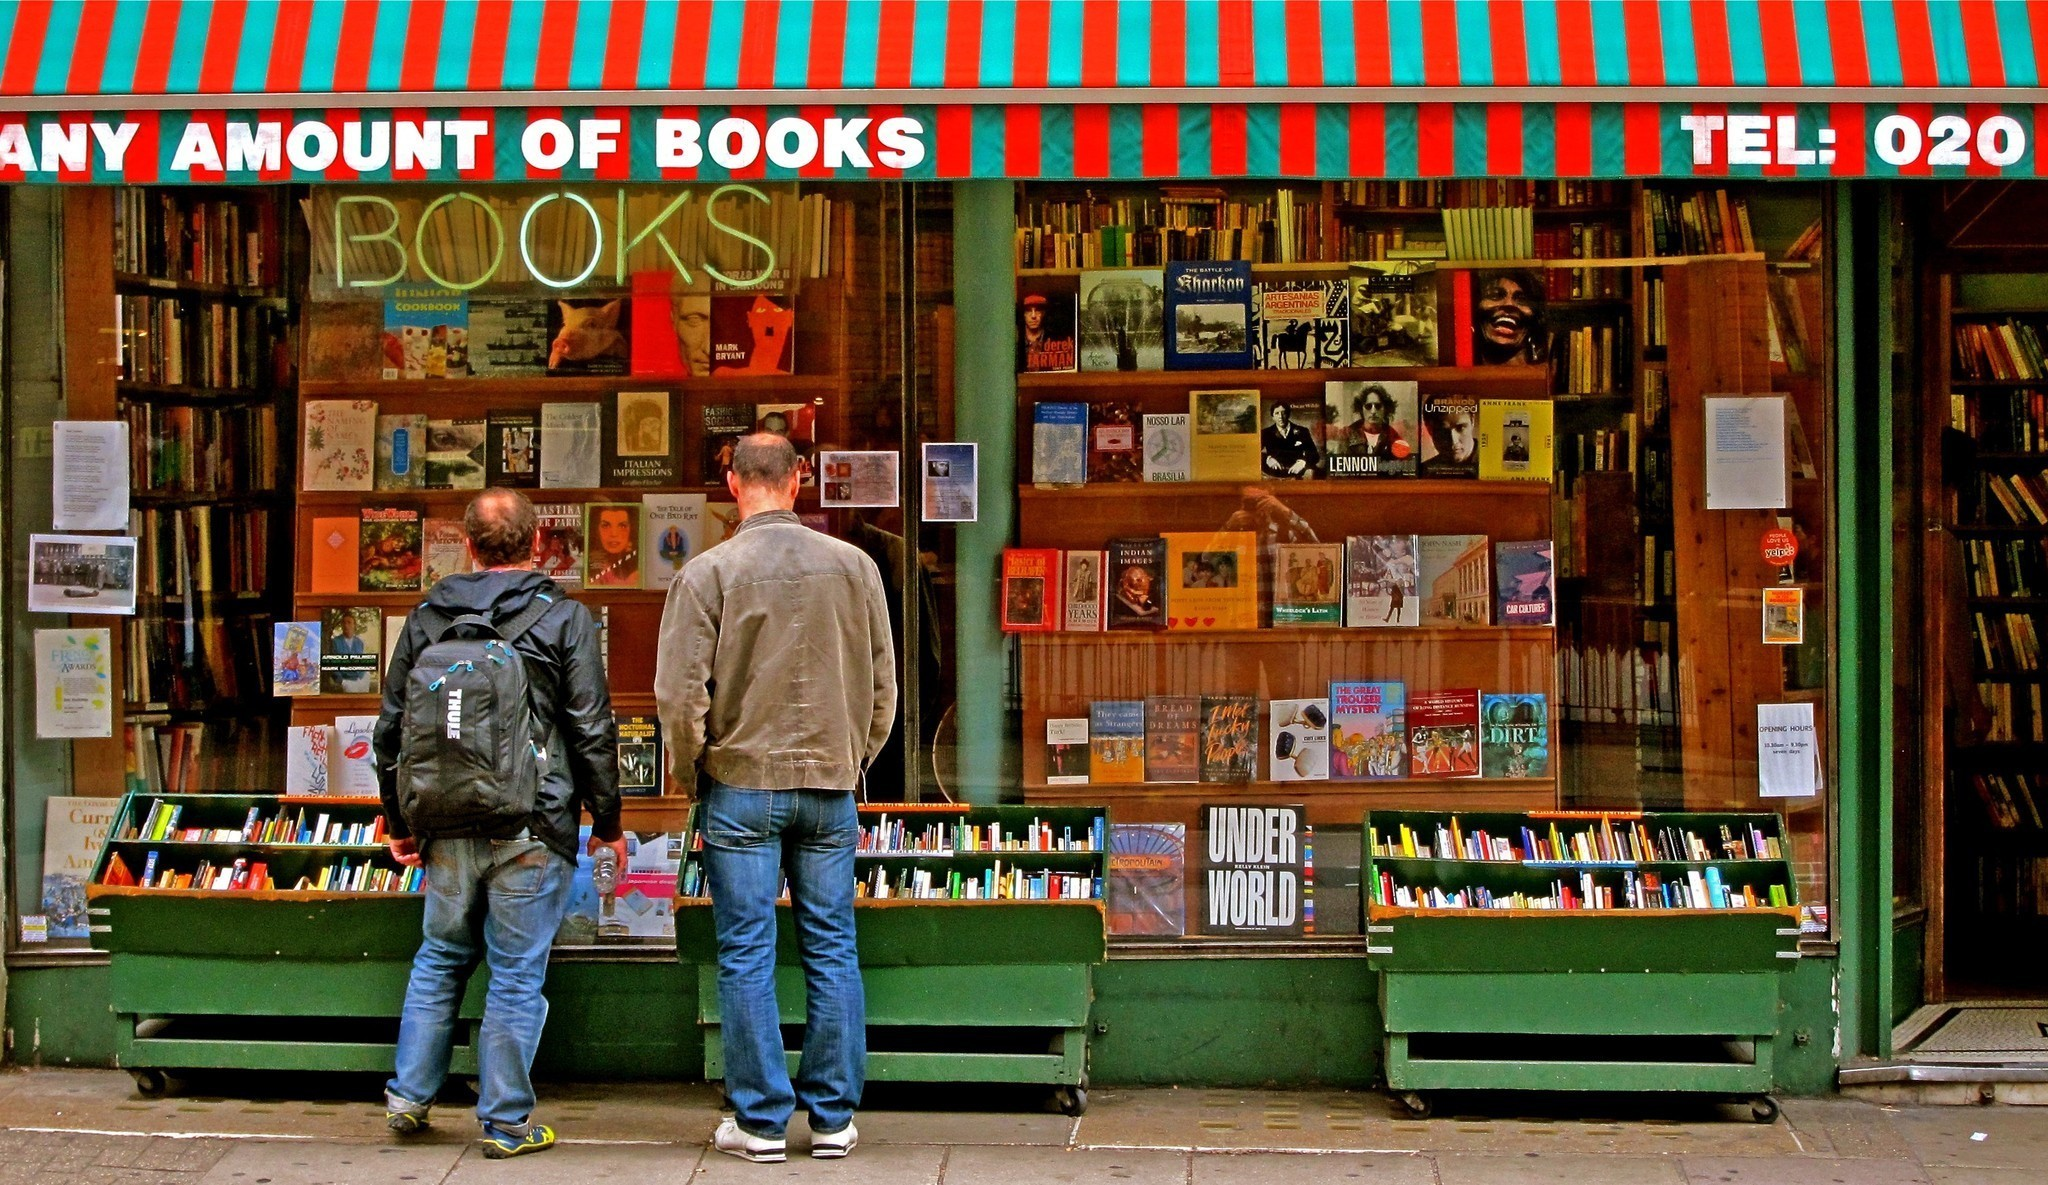 From Foyles to Hatchards, slip between the covers of London bookshops